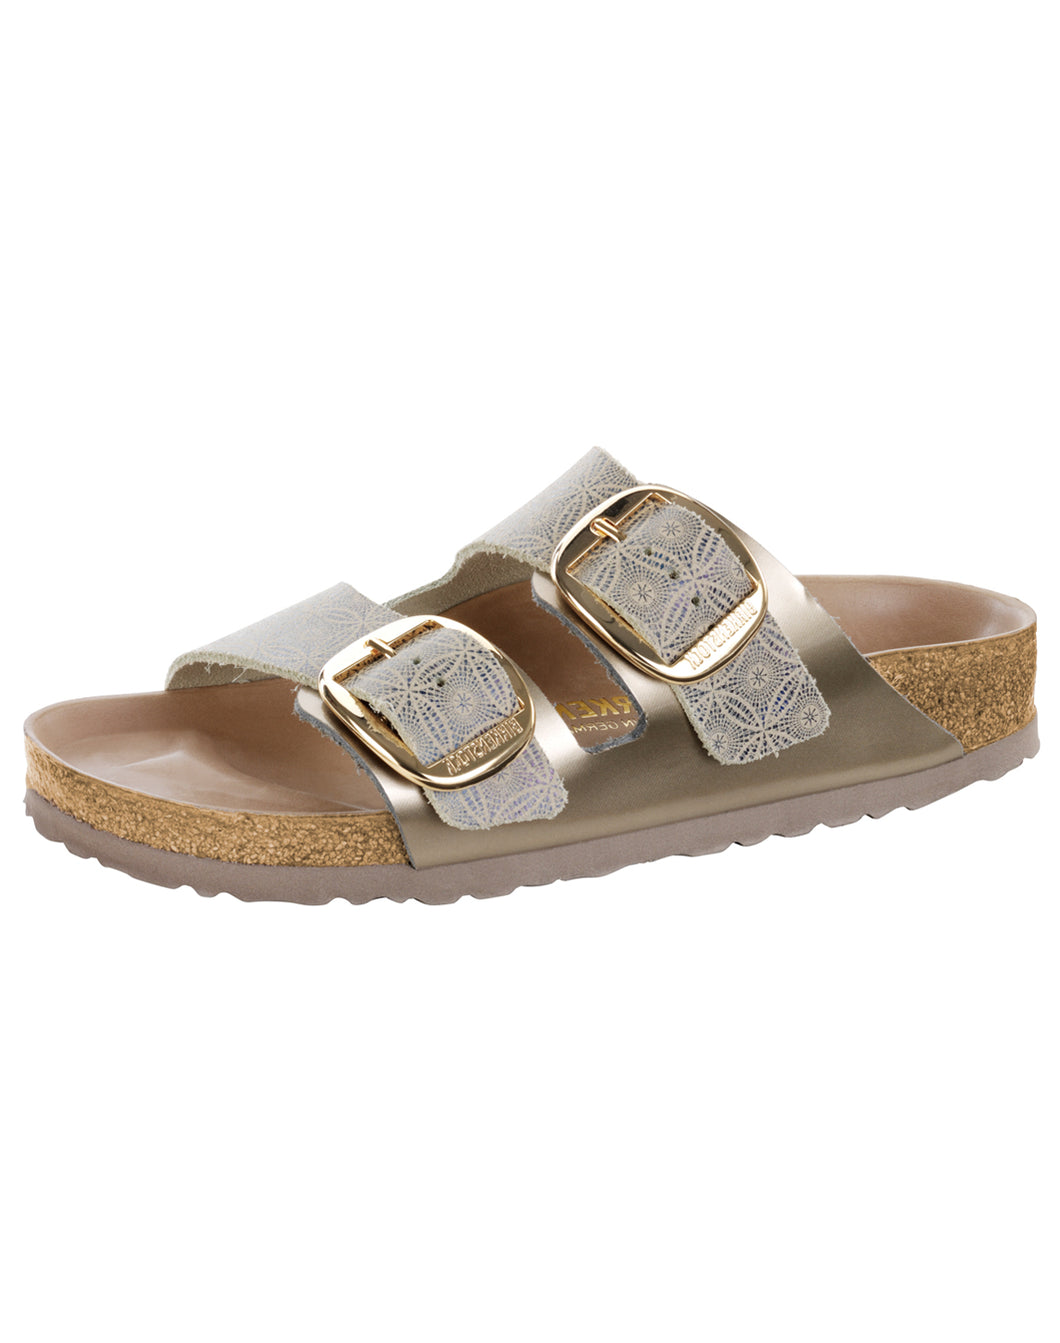 BIRKENSTOCK ARIZONA BIG BUCKLE CERAMIC BLUE NL REGULAR